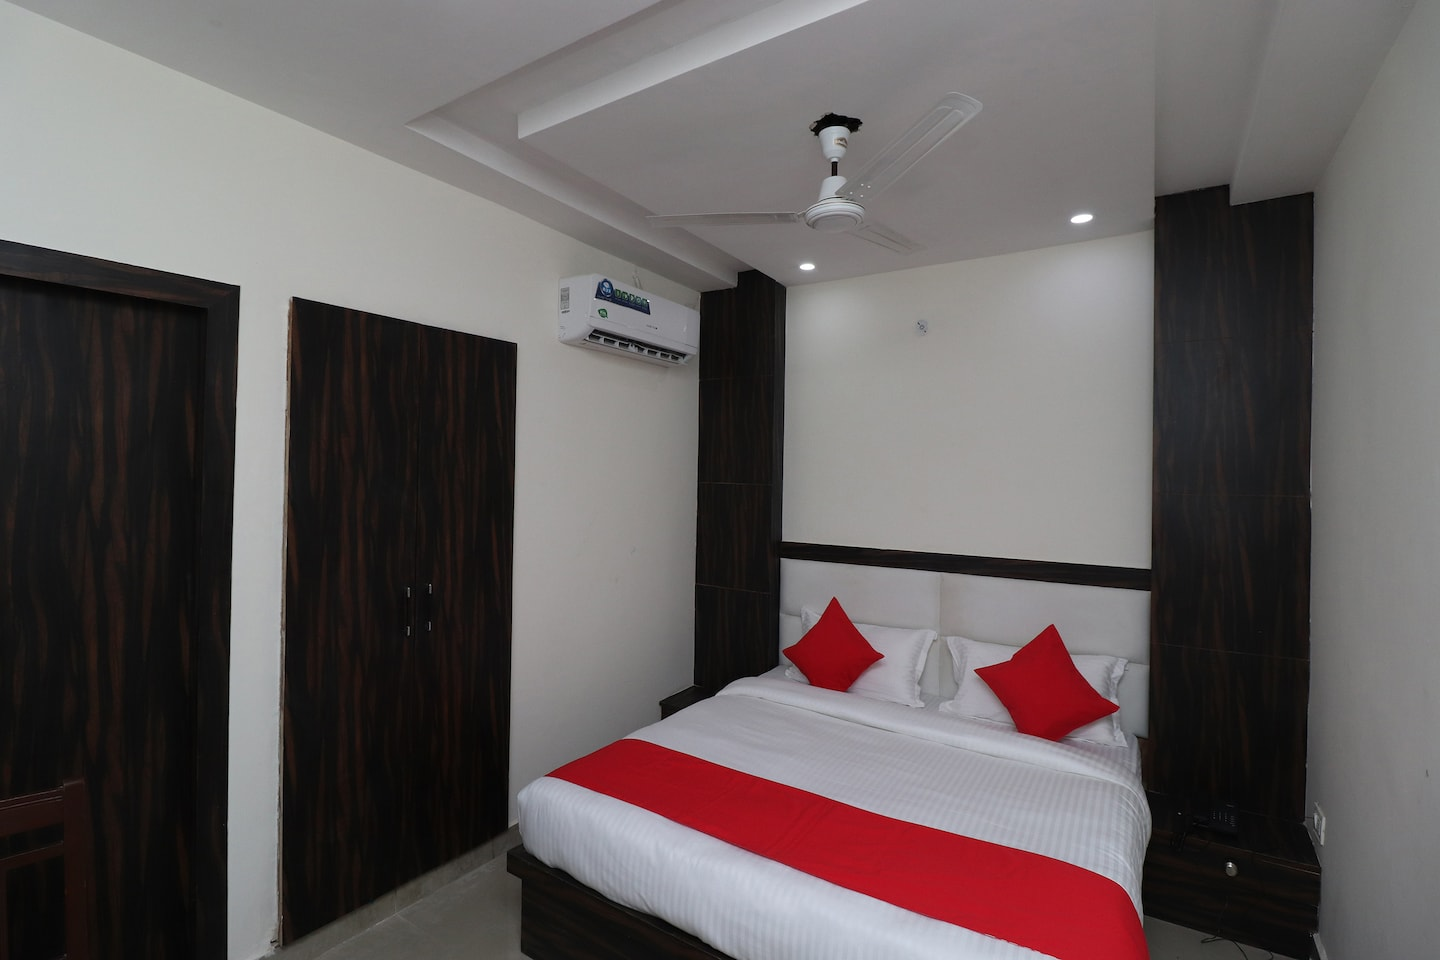 Enjoyable Oyo 42691 Rhythm Residency Agra Agra Hotel Reviews Photos Interior Design Ideas Clesiryabchikinfo